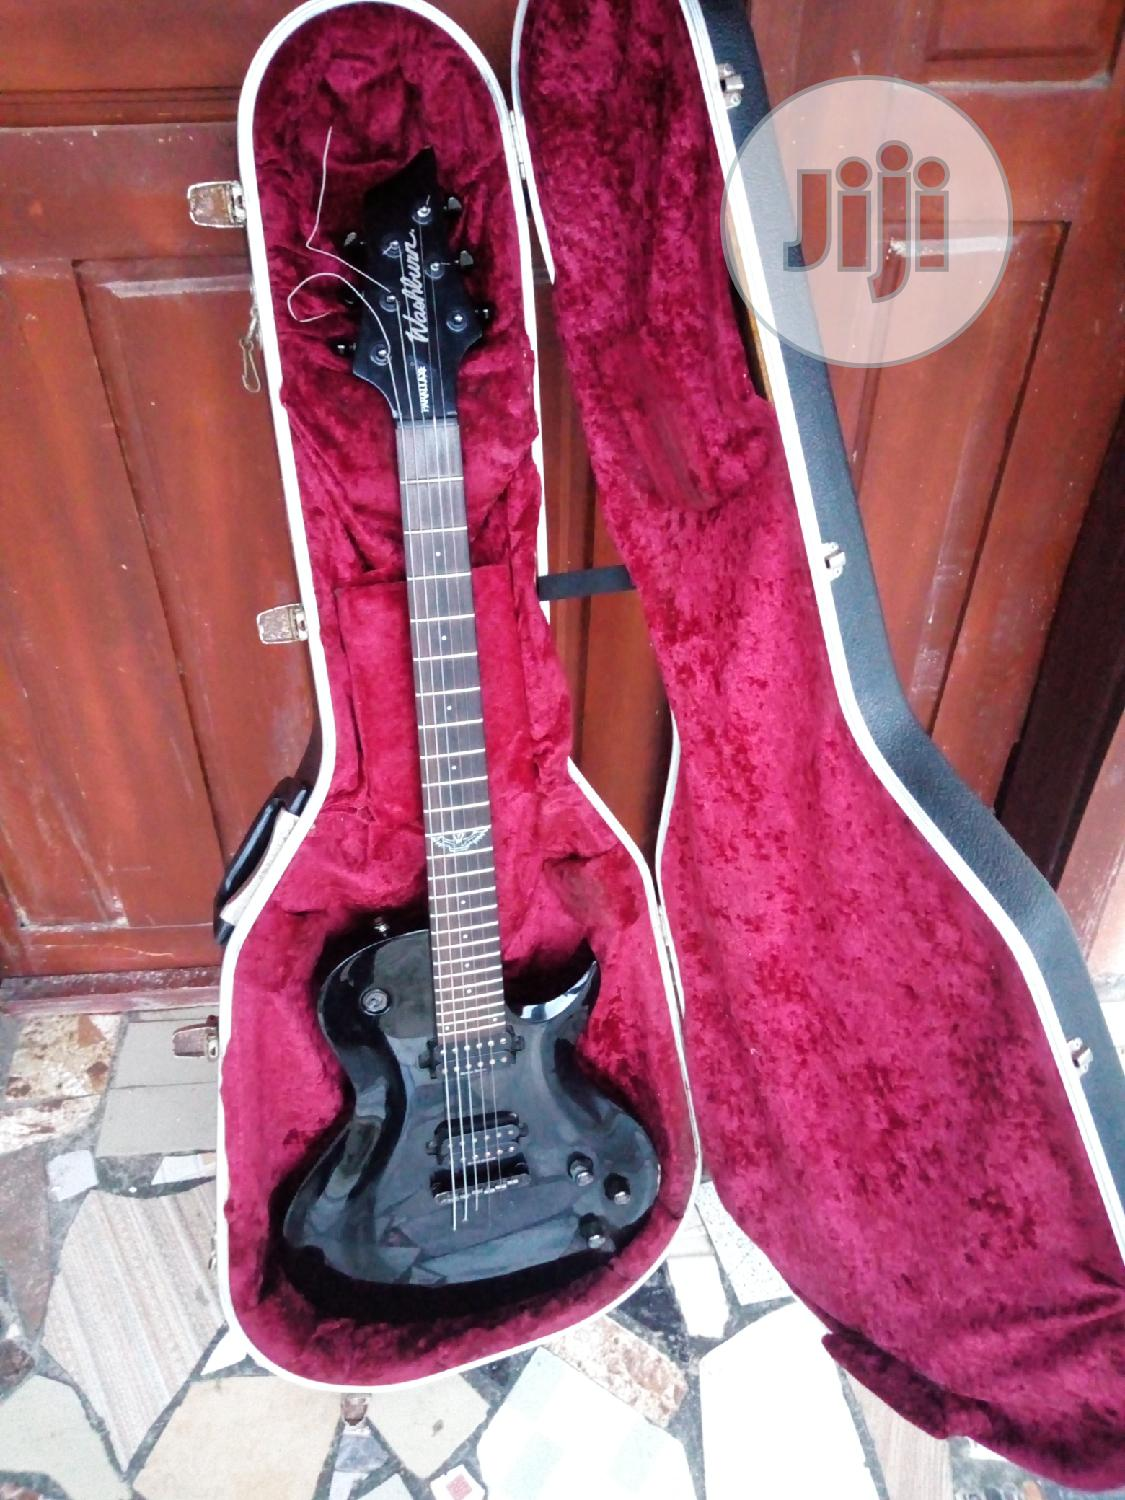 Washburn Electric Guitar Lxb100b With Hard Case | Musical Instruments & Gear for sale in Ojo, Lagos State, Nigeria